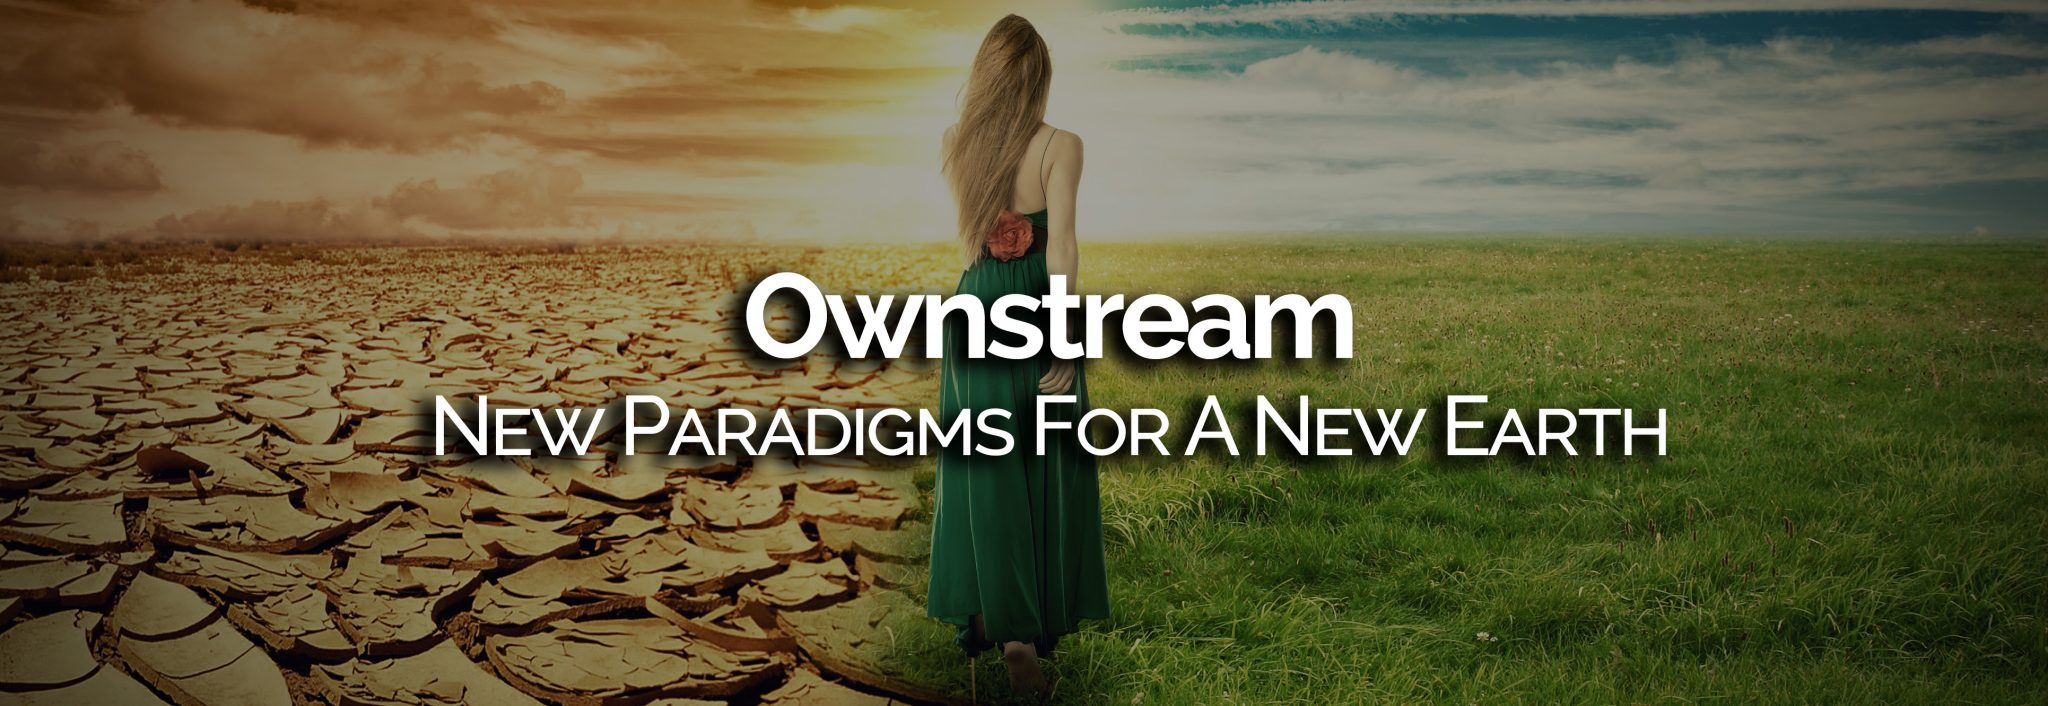 Ownstream